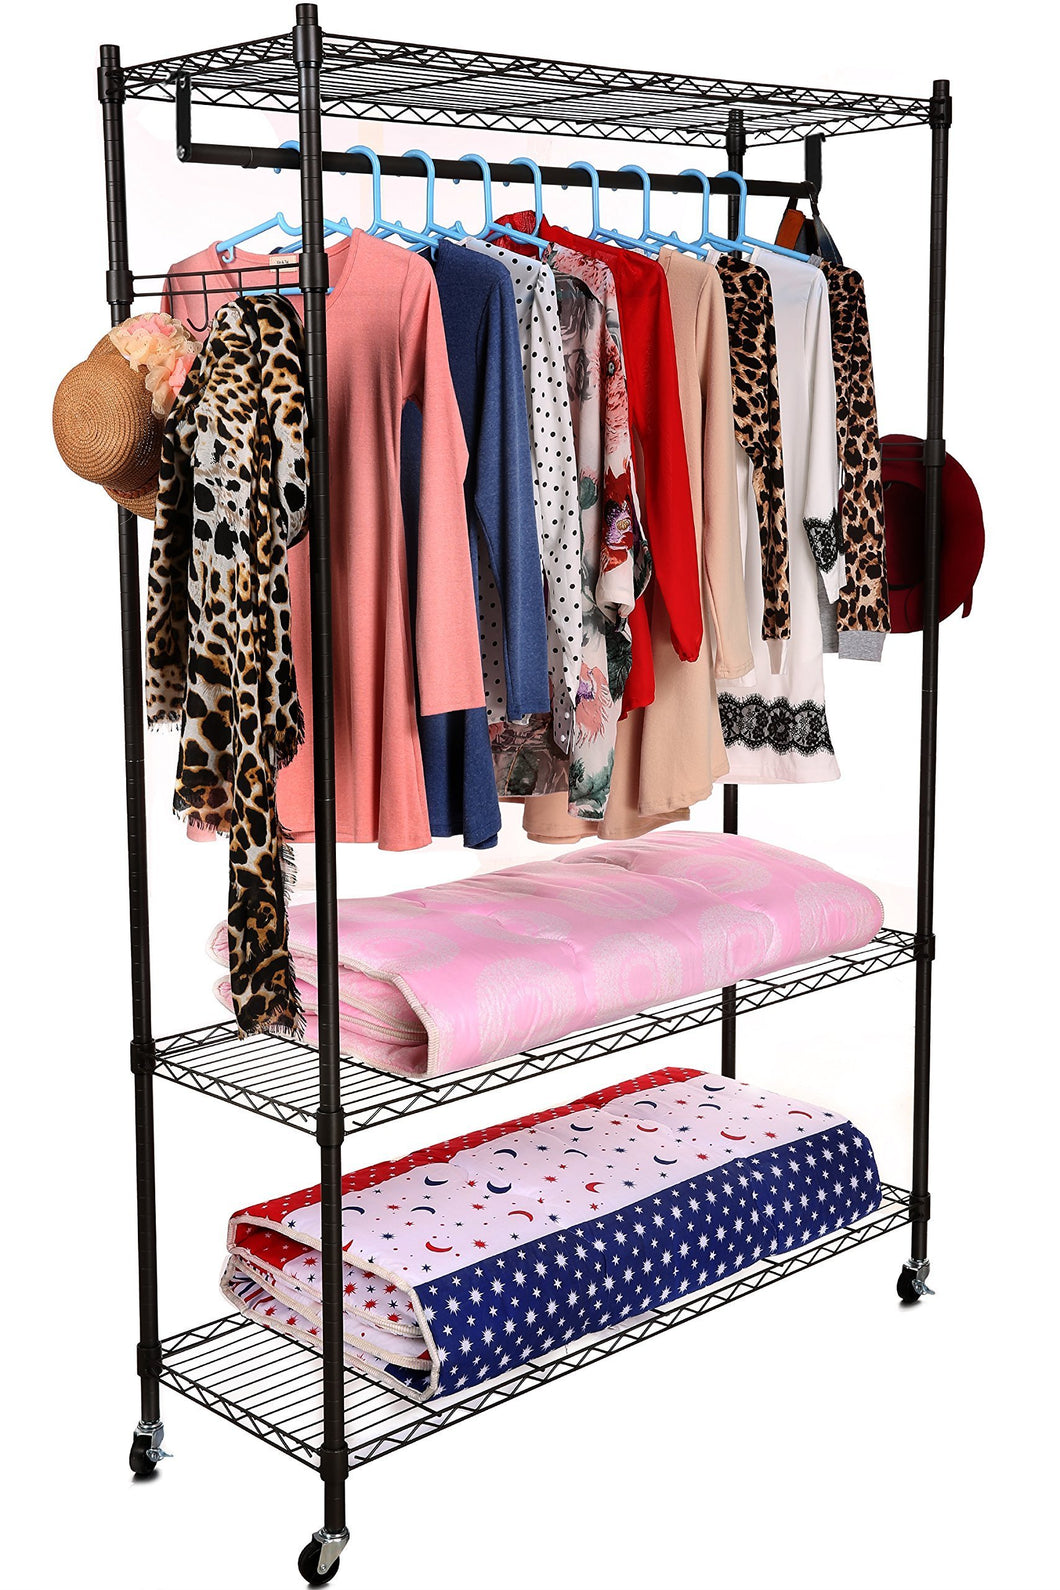 Related homdox 3 tiers large size heavy duty wire shelving garment rolling rack clothing rack with double clothes rods and lockable wheels 1 pair side hooks black